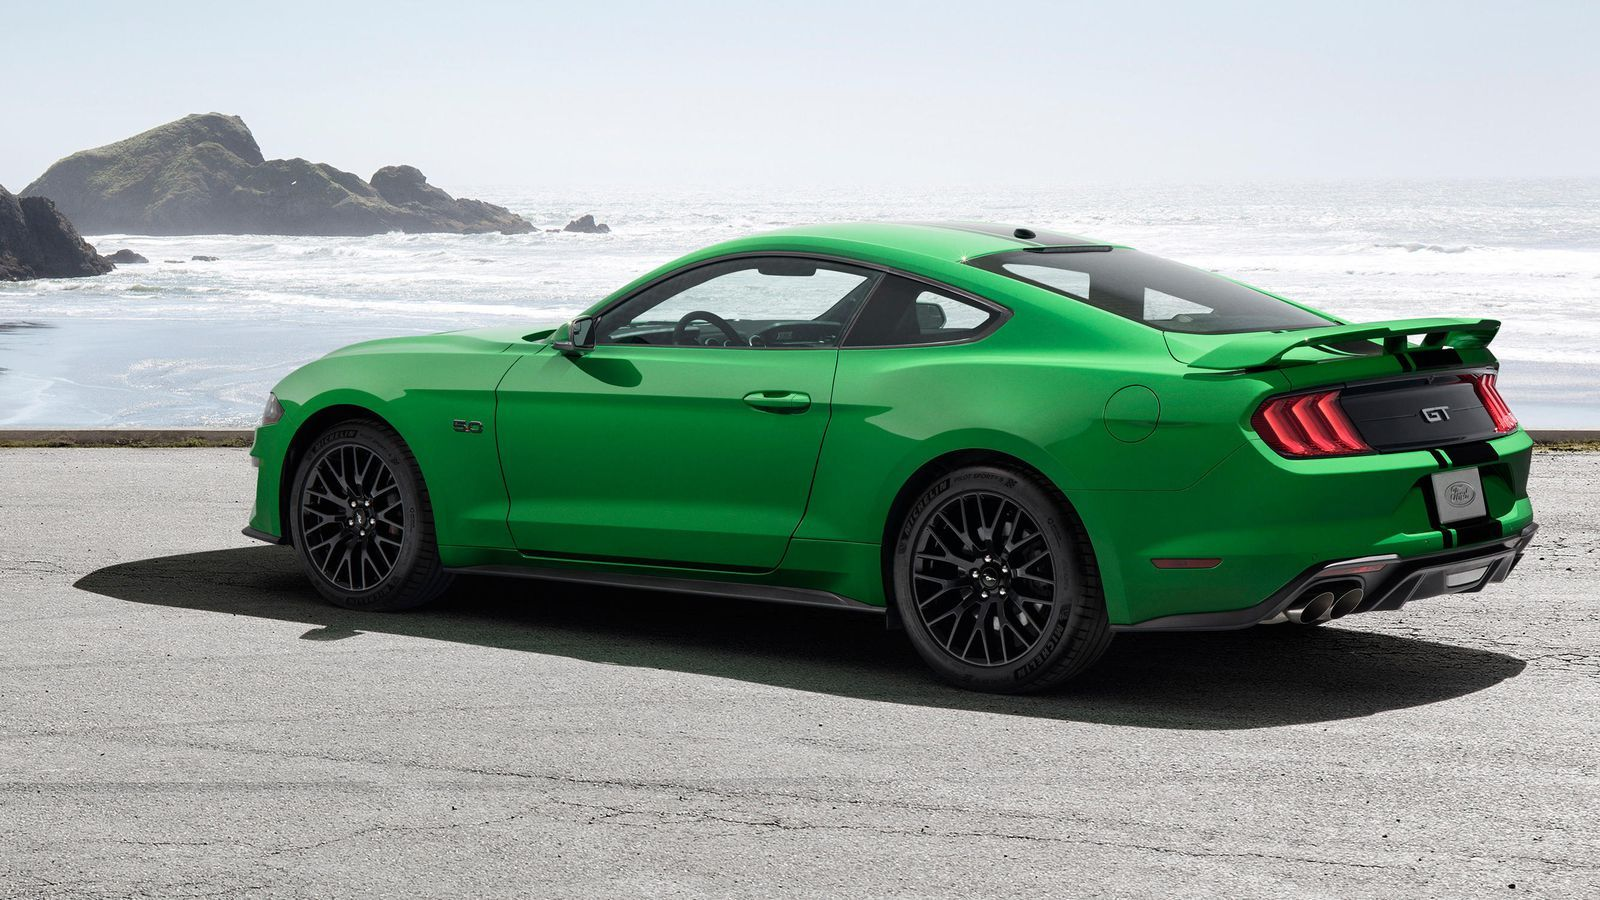 2019 Ford Mustang Has The Need For Green Ford Mustang Mustang